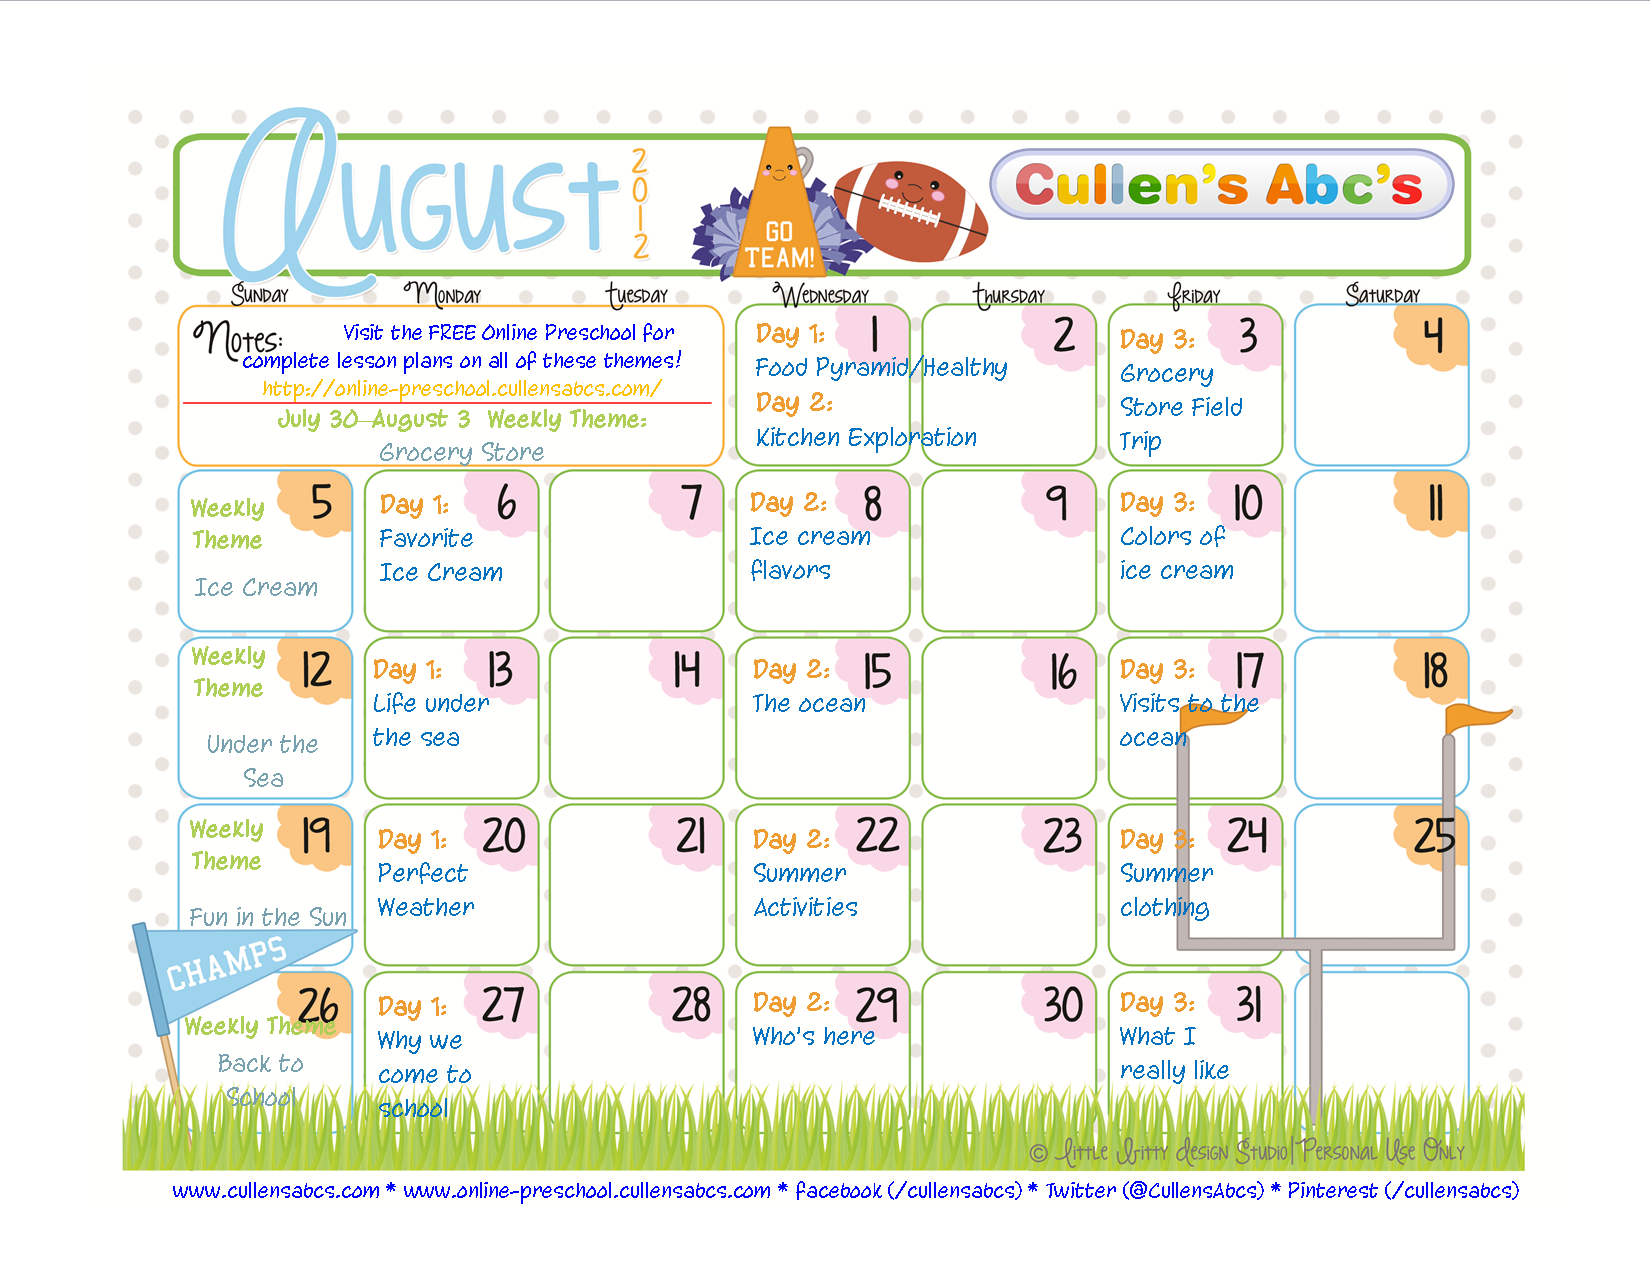 The August Calendar is now available!  Download and print this to keep up with everything Cullen's Abc's!  Videos and lesson plans are available in the FREE online preschool for each day!  www.cullensabcs.com  http://www.online-preschool.cullensabcs.com/